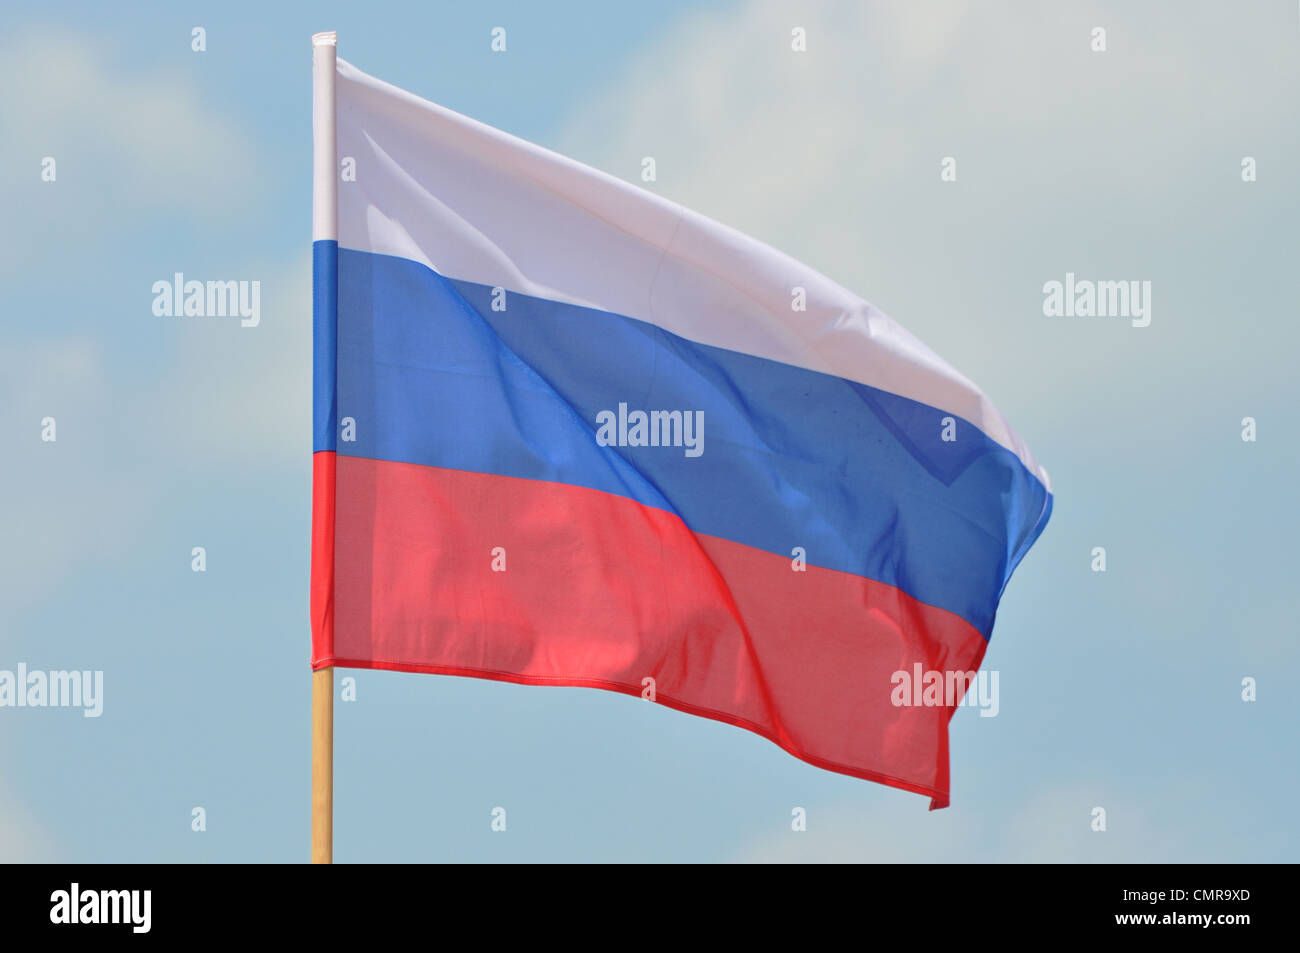 Flag of Russian Federation against blue sky - Stock Image